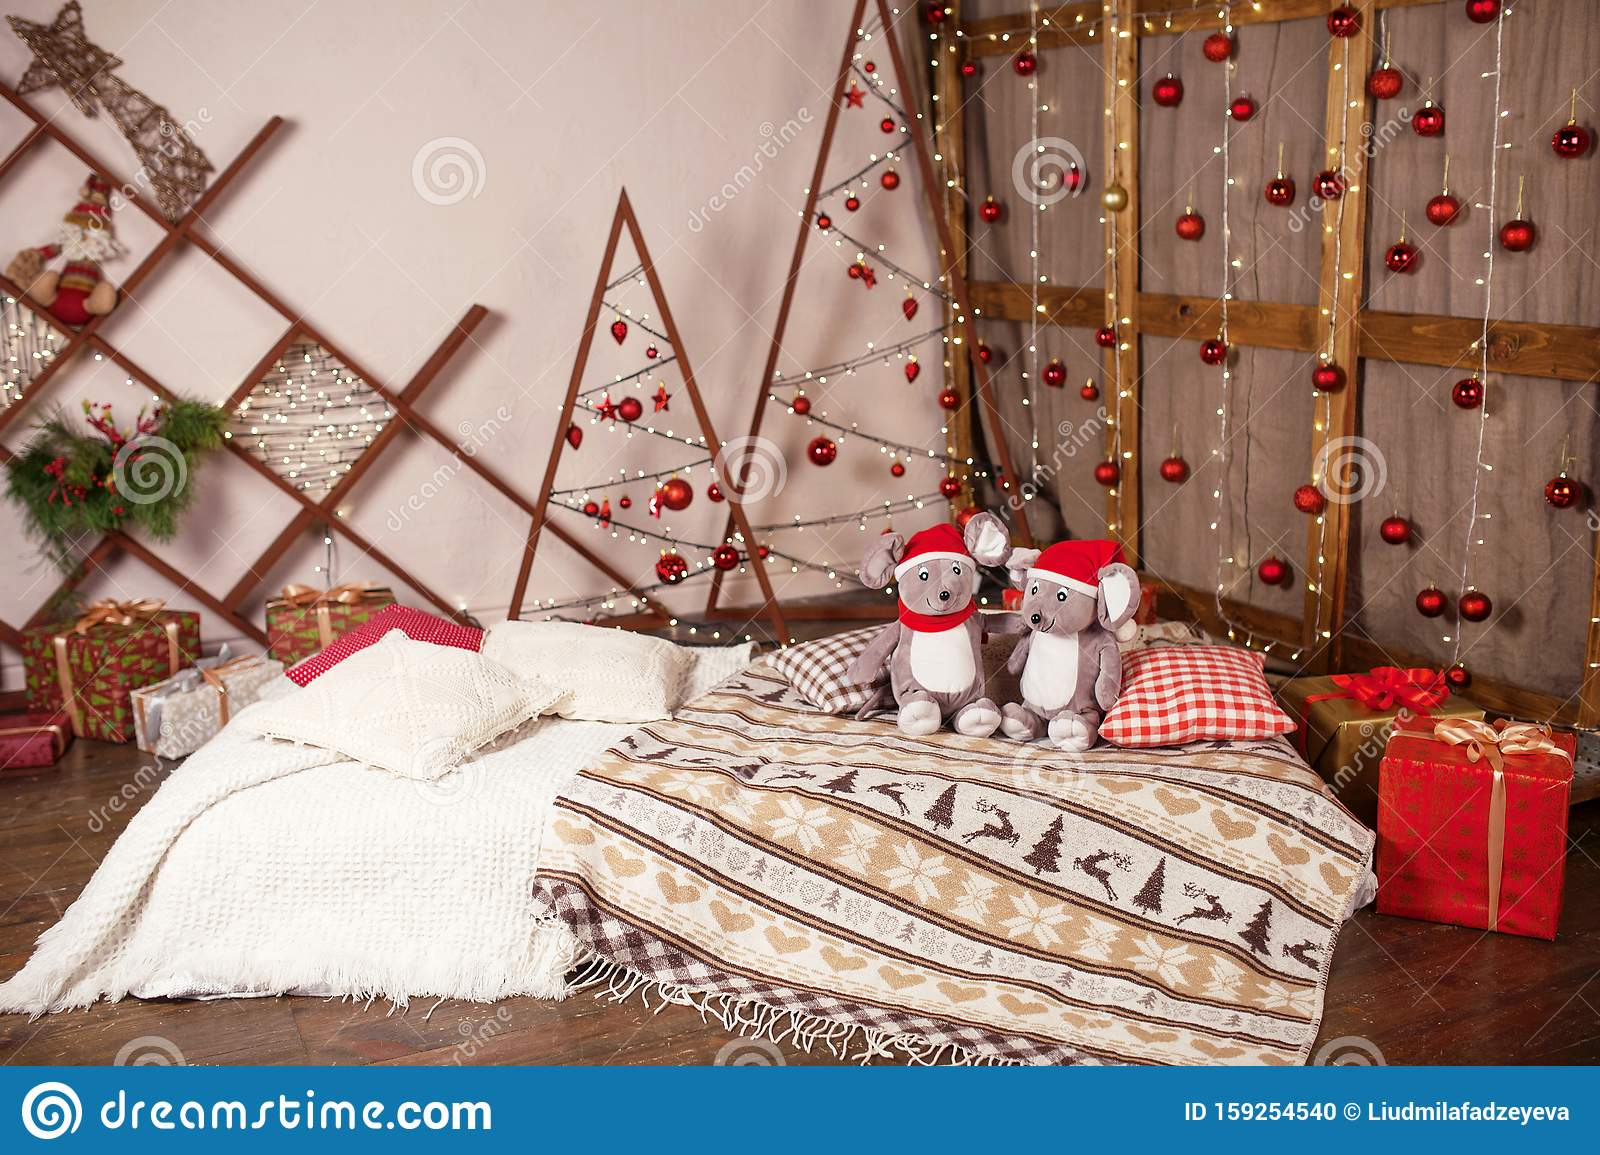 Christmas Decor Mattress On Floor With Pillows And Cosy Plaid Ftv Soft Toy Grey Rats On Christmas Background Symbol Of The Stock Photo Image Of Interior Mattress 159254540